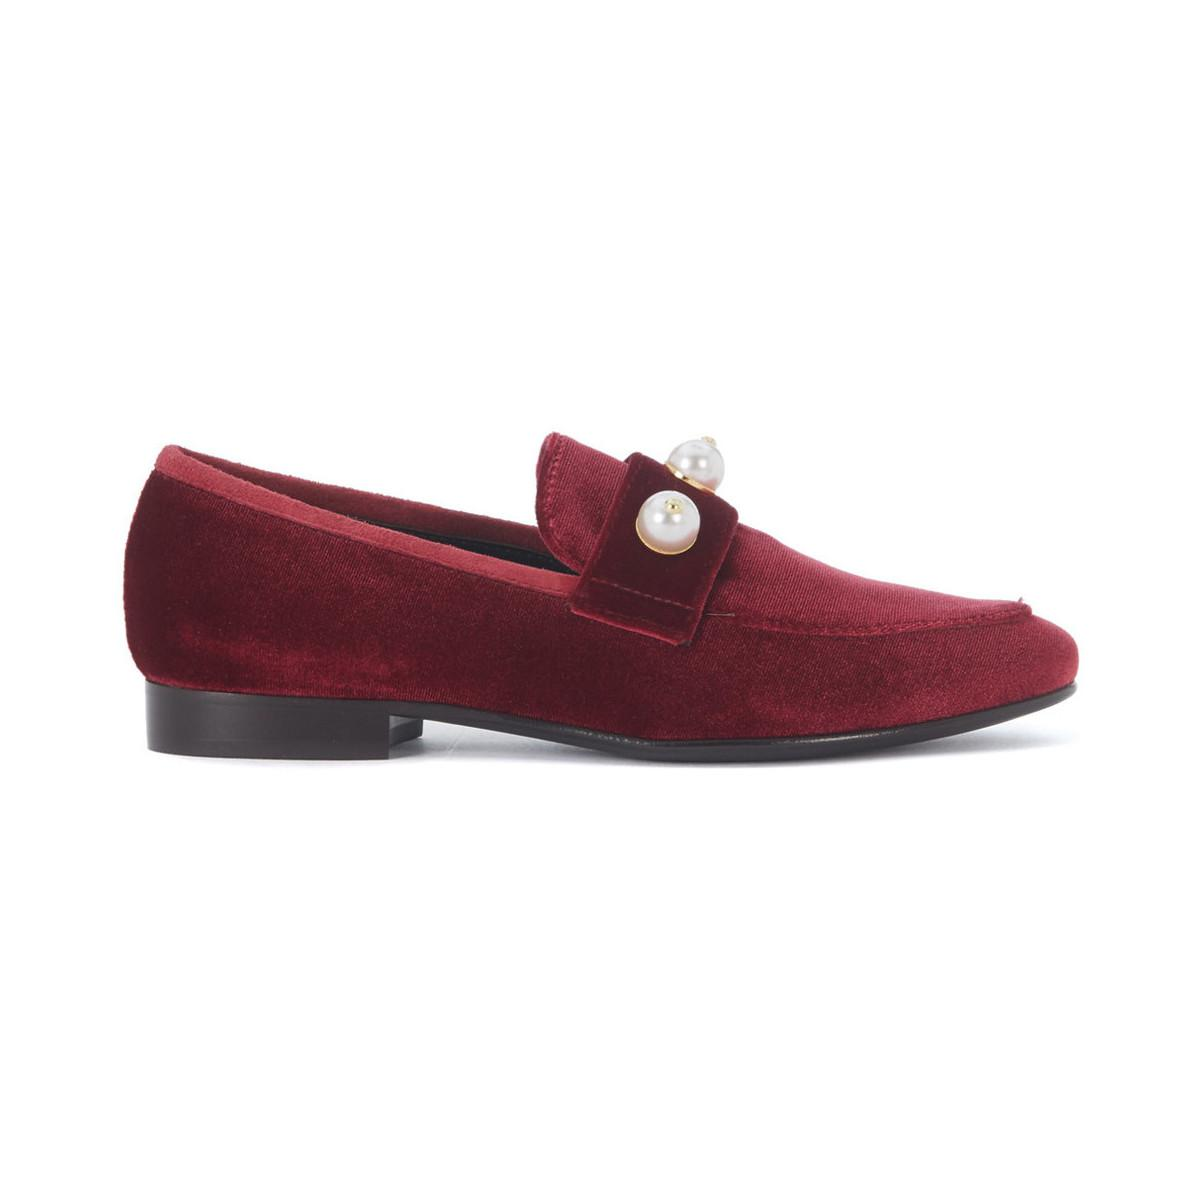 Via Roma 15 velvet slippers sast for sale with paypal sale online R5M4Xq7Ow